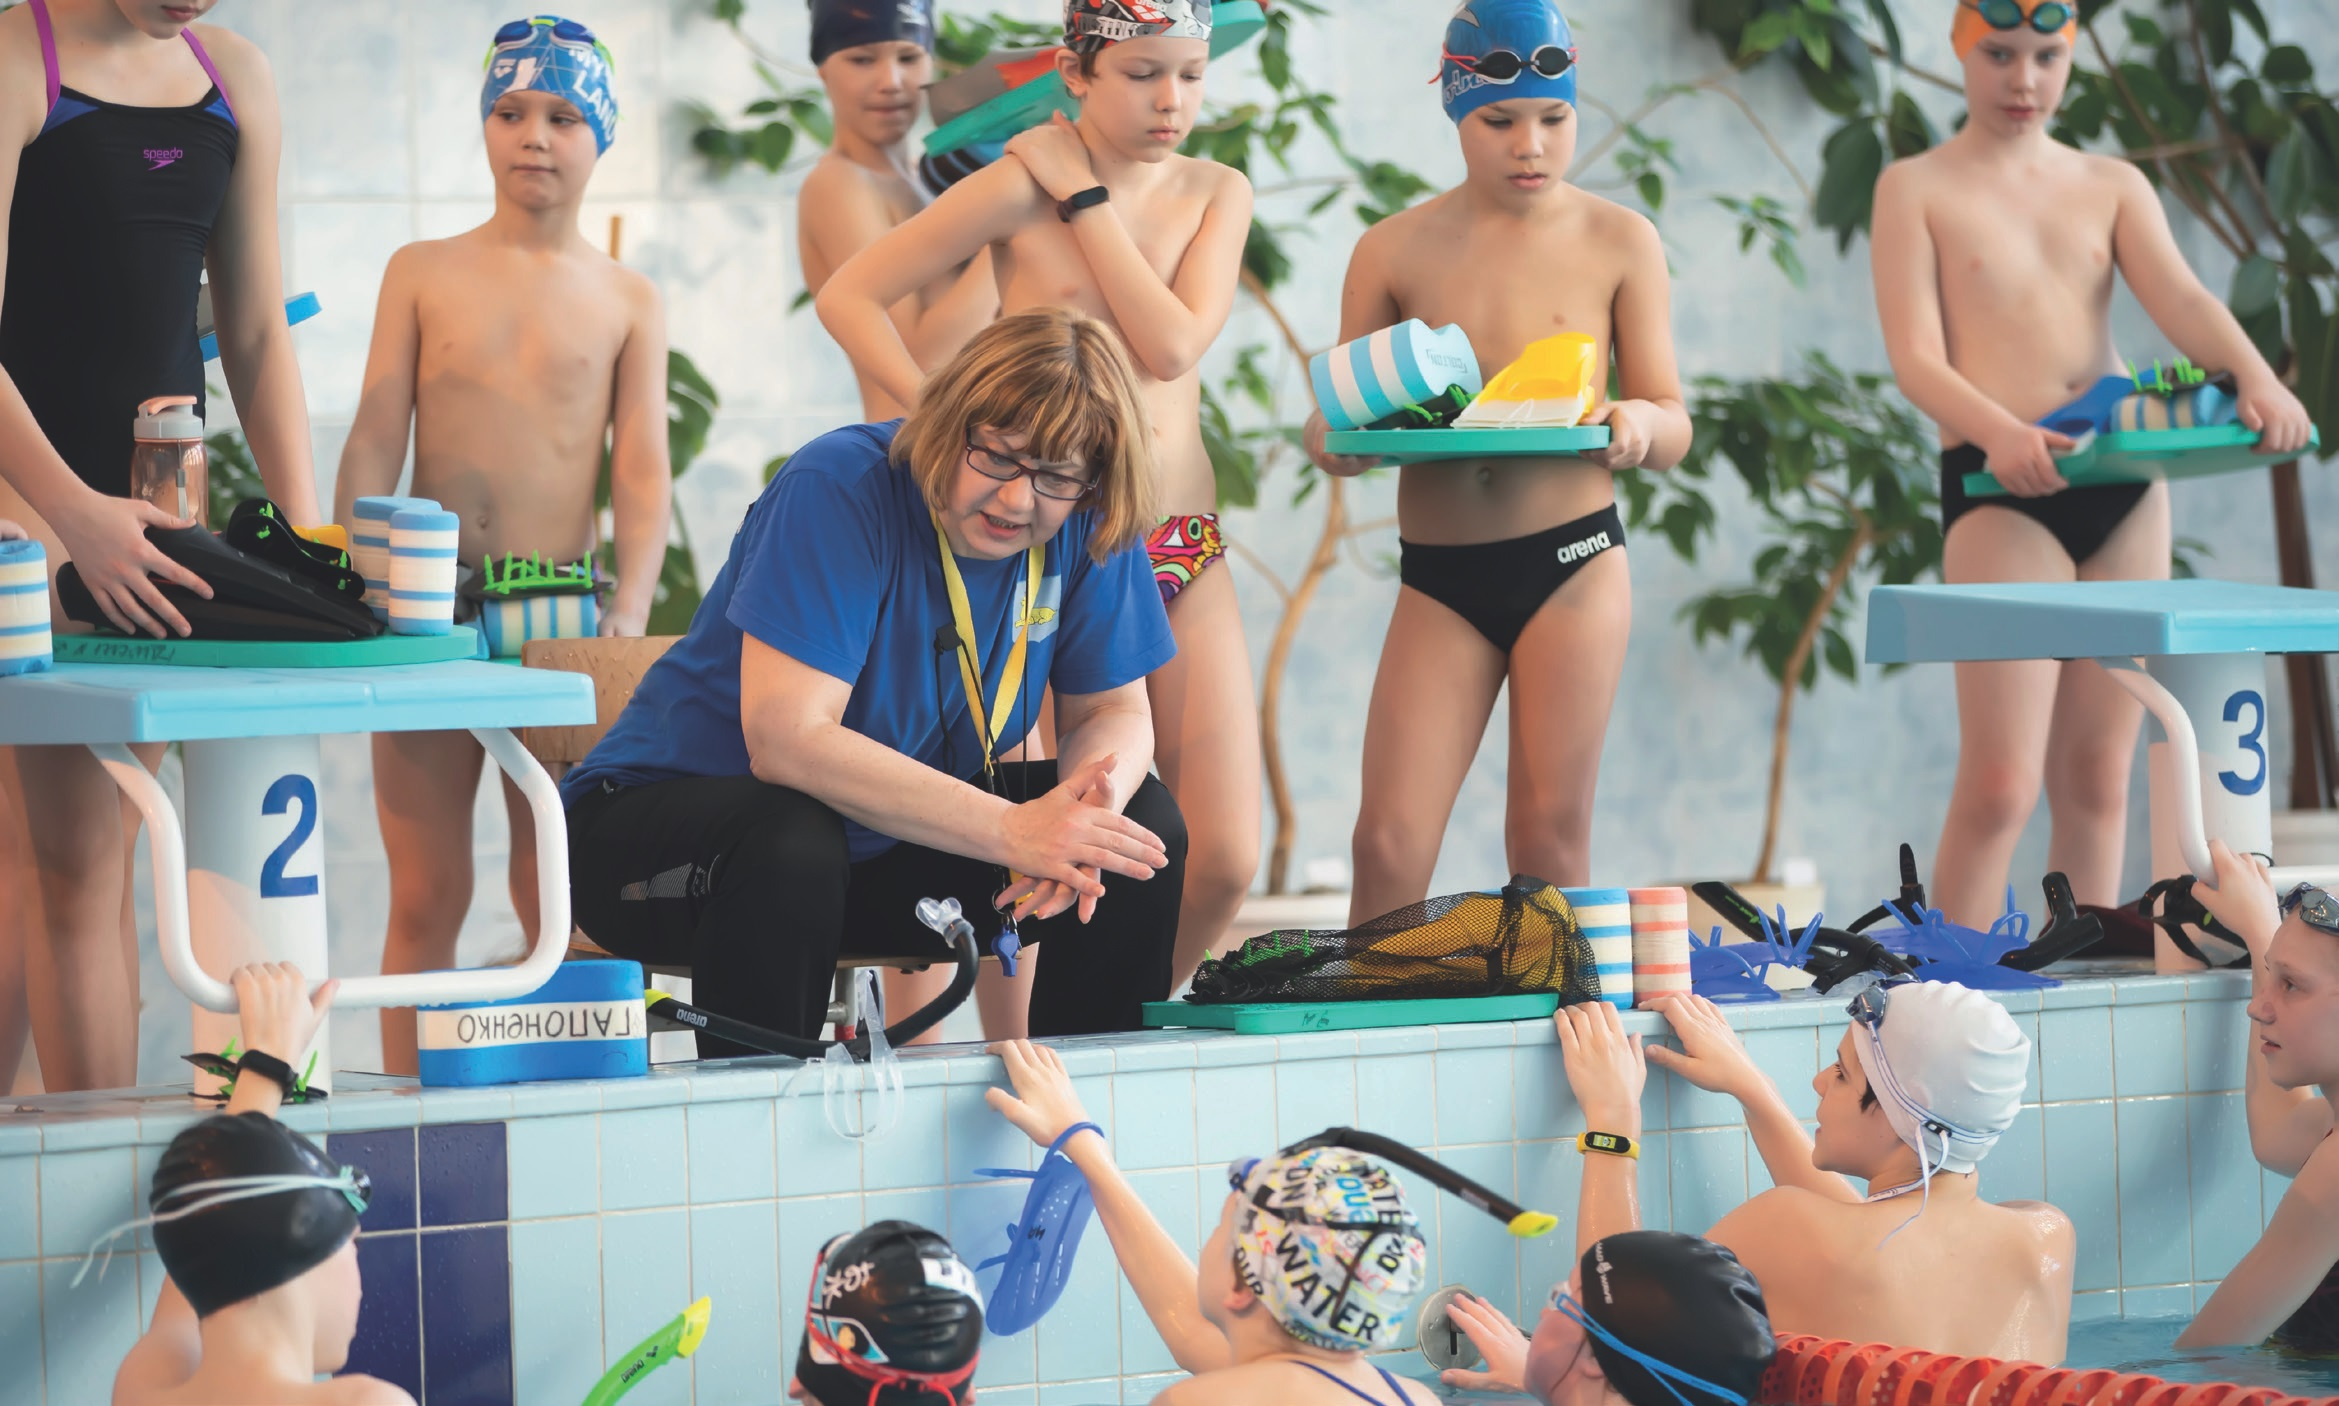 SWIM ENGLAND hope every child leaves primary school set up to enjoy the water safely for the rest of their lives